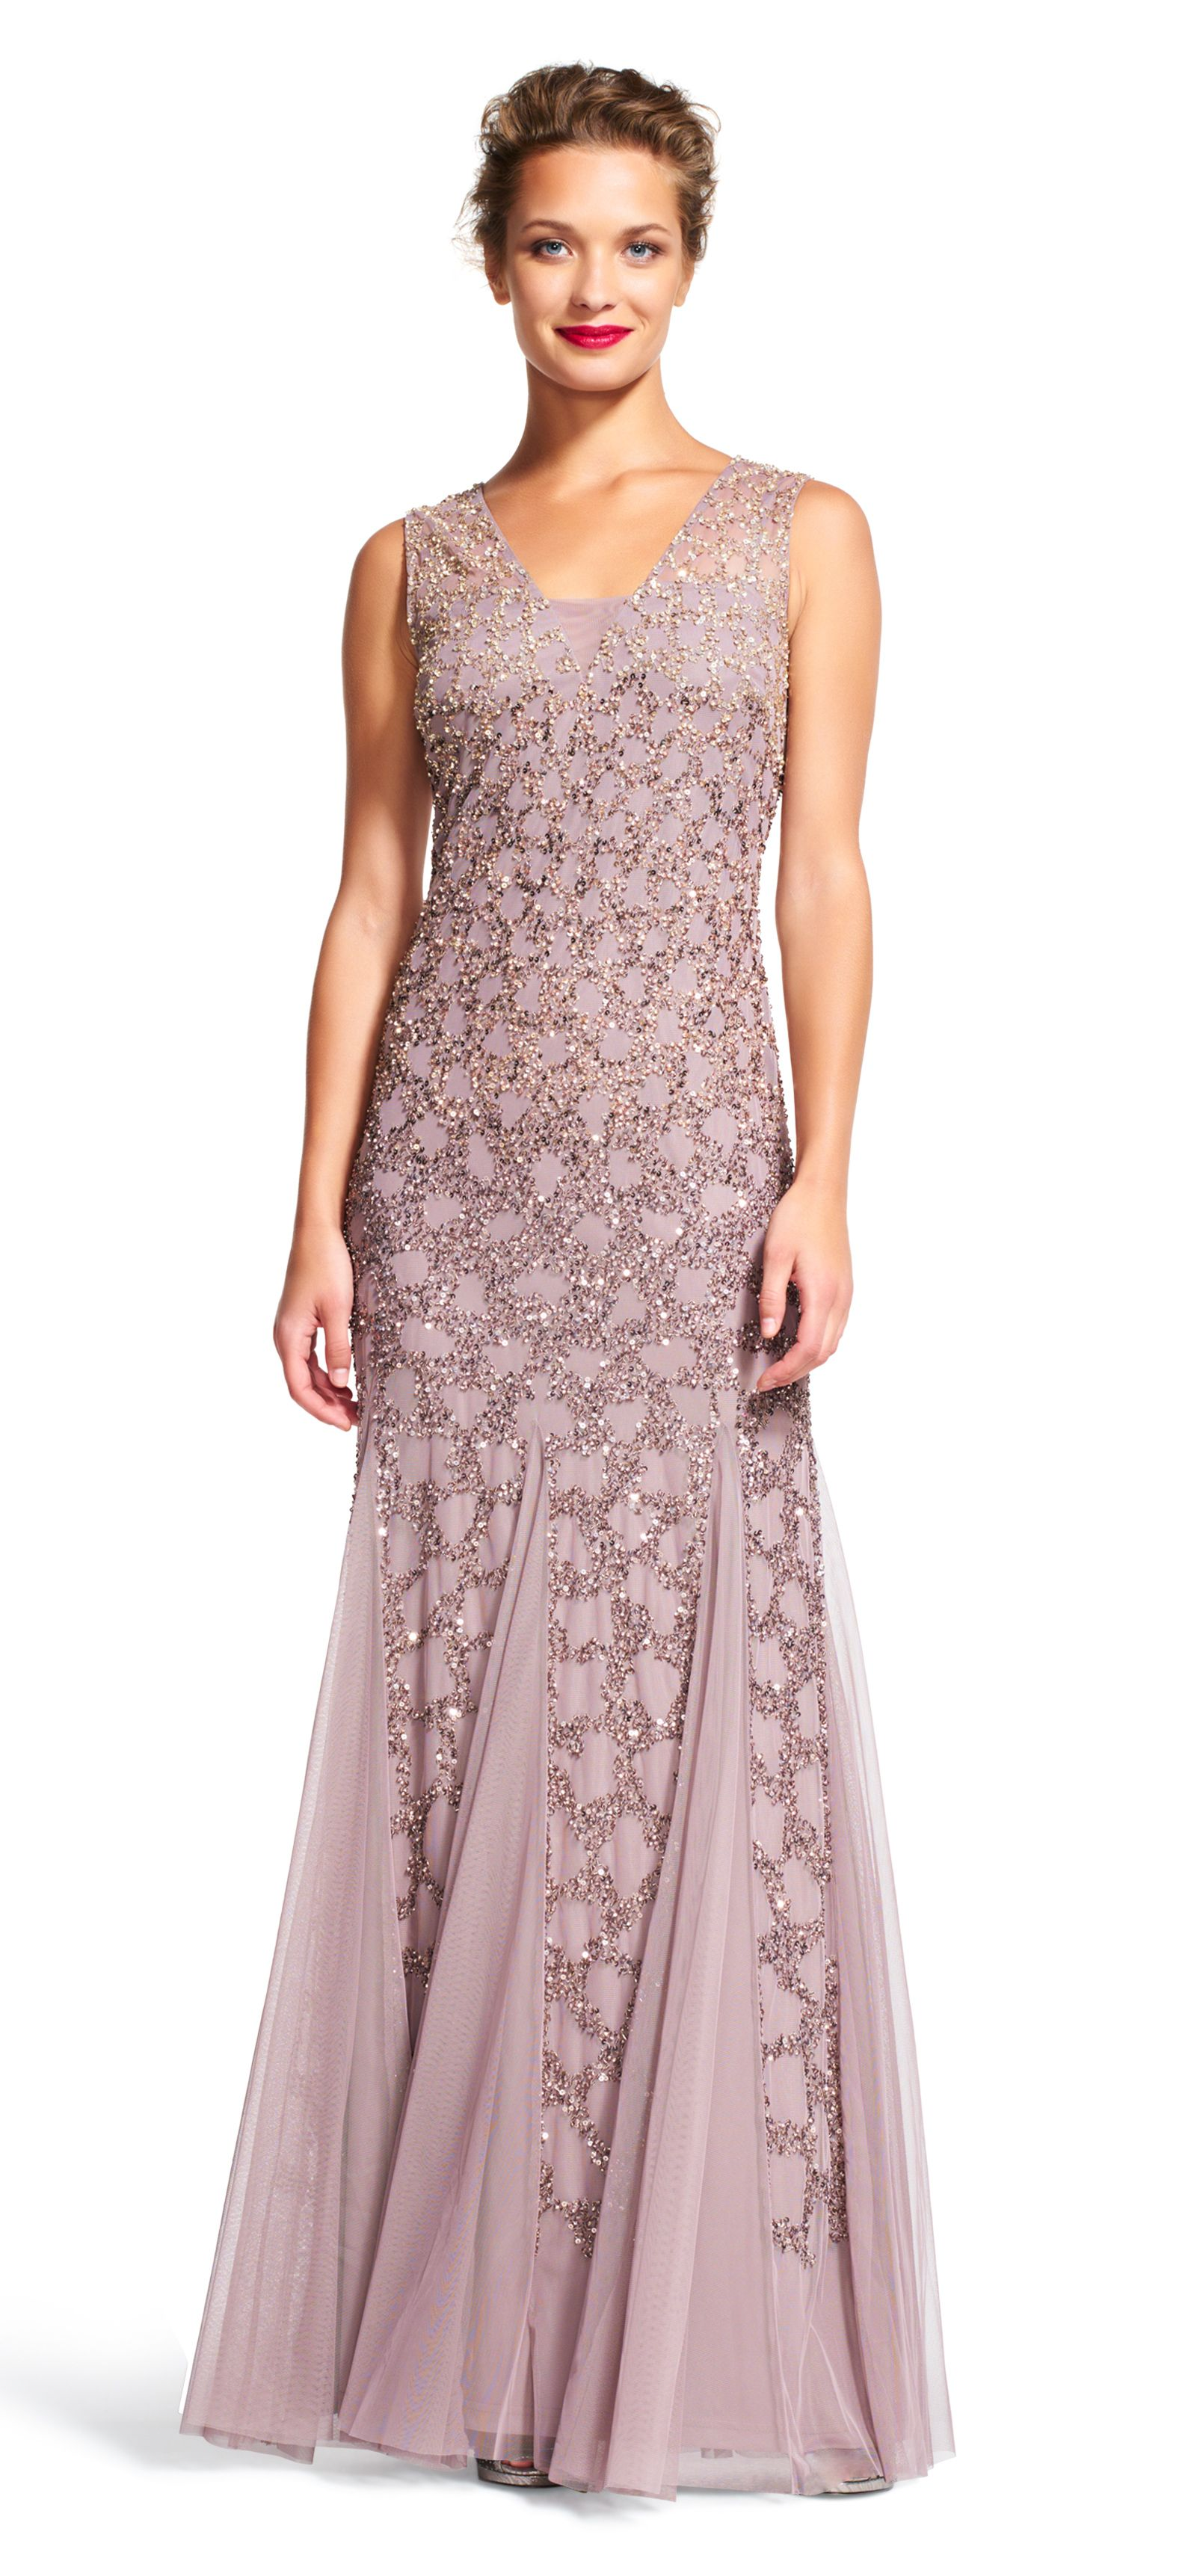 540865b4309c Beaded Gown Stone Brown 15995 Evening Dress October 2016